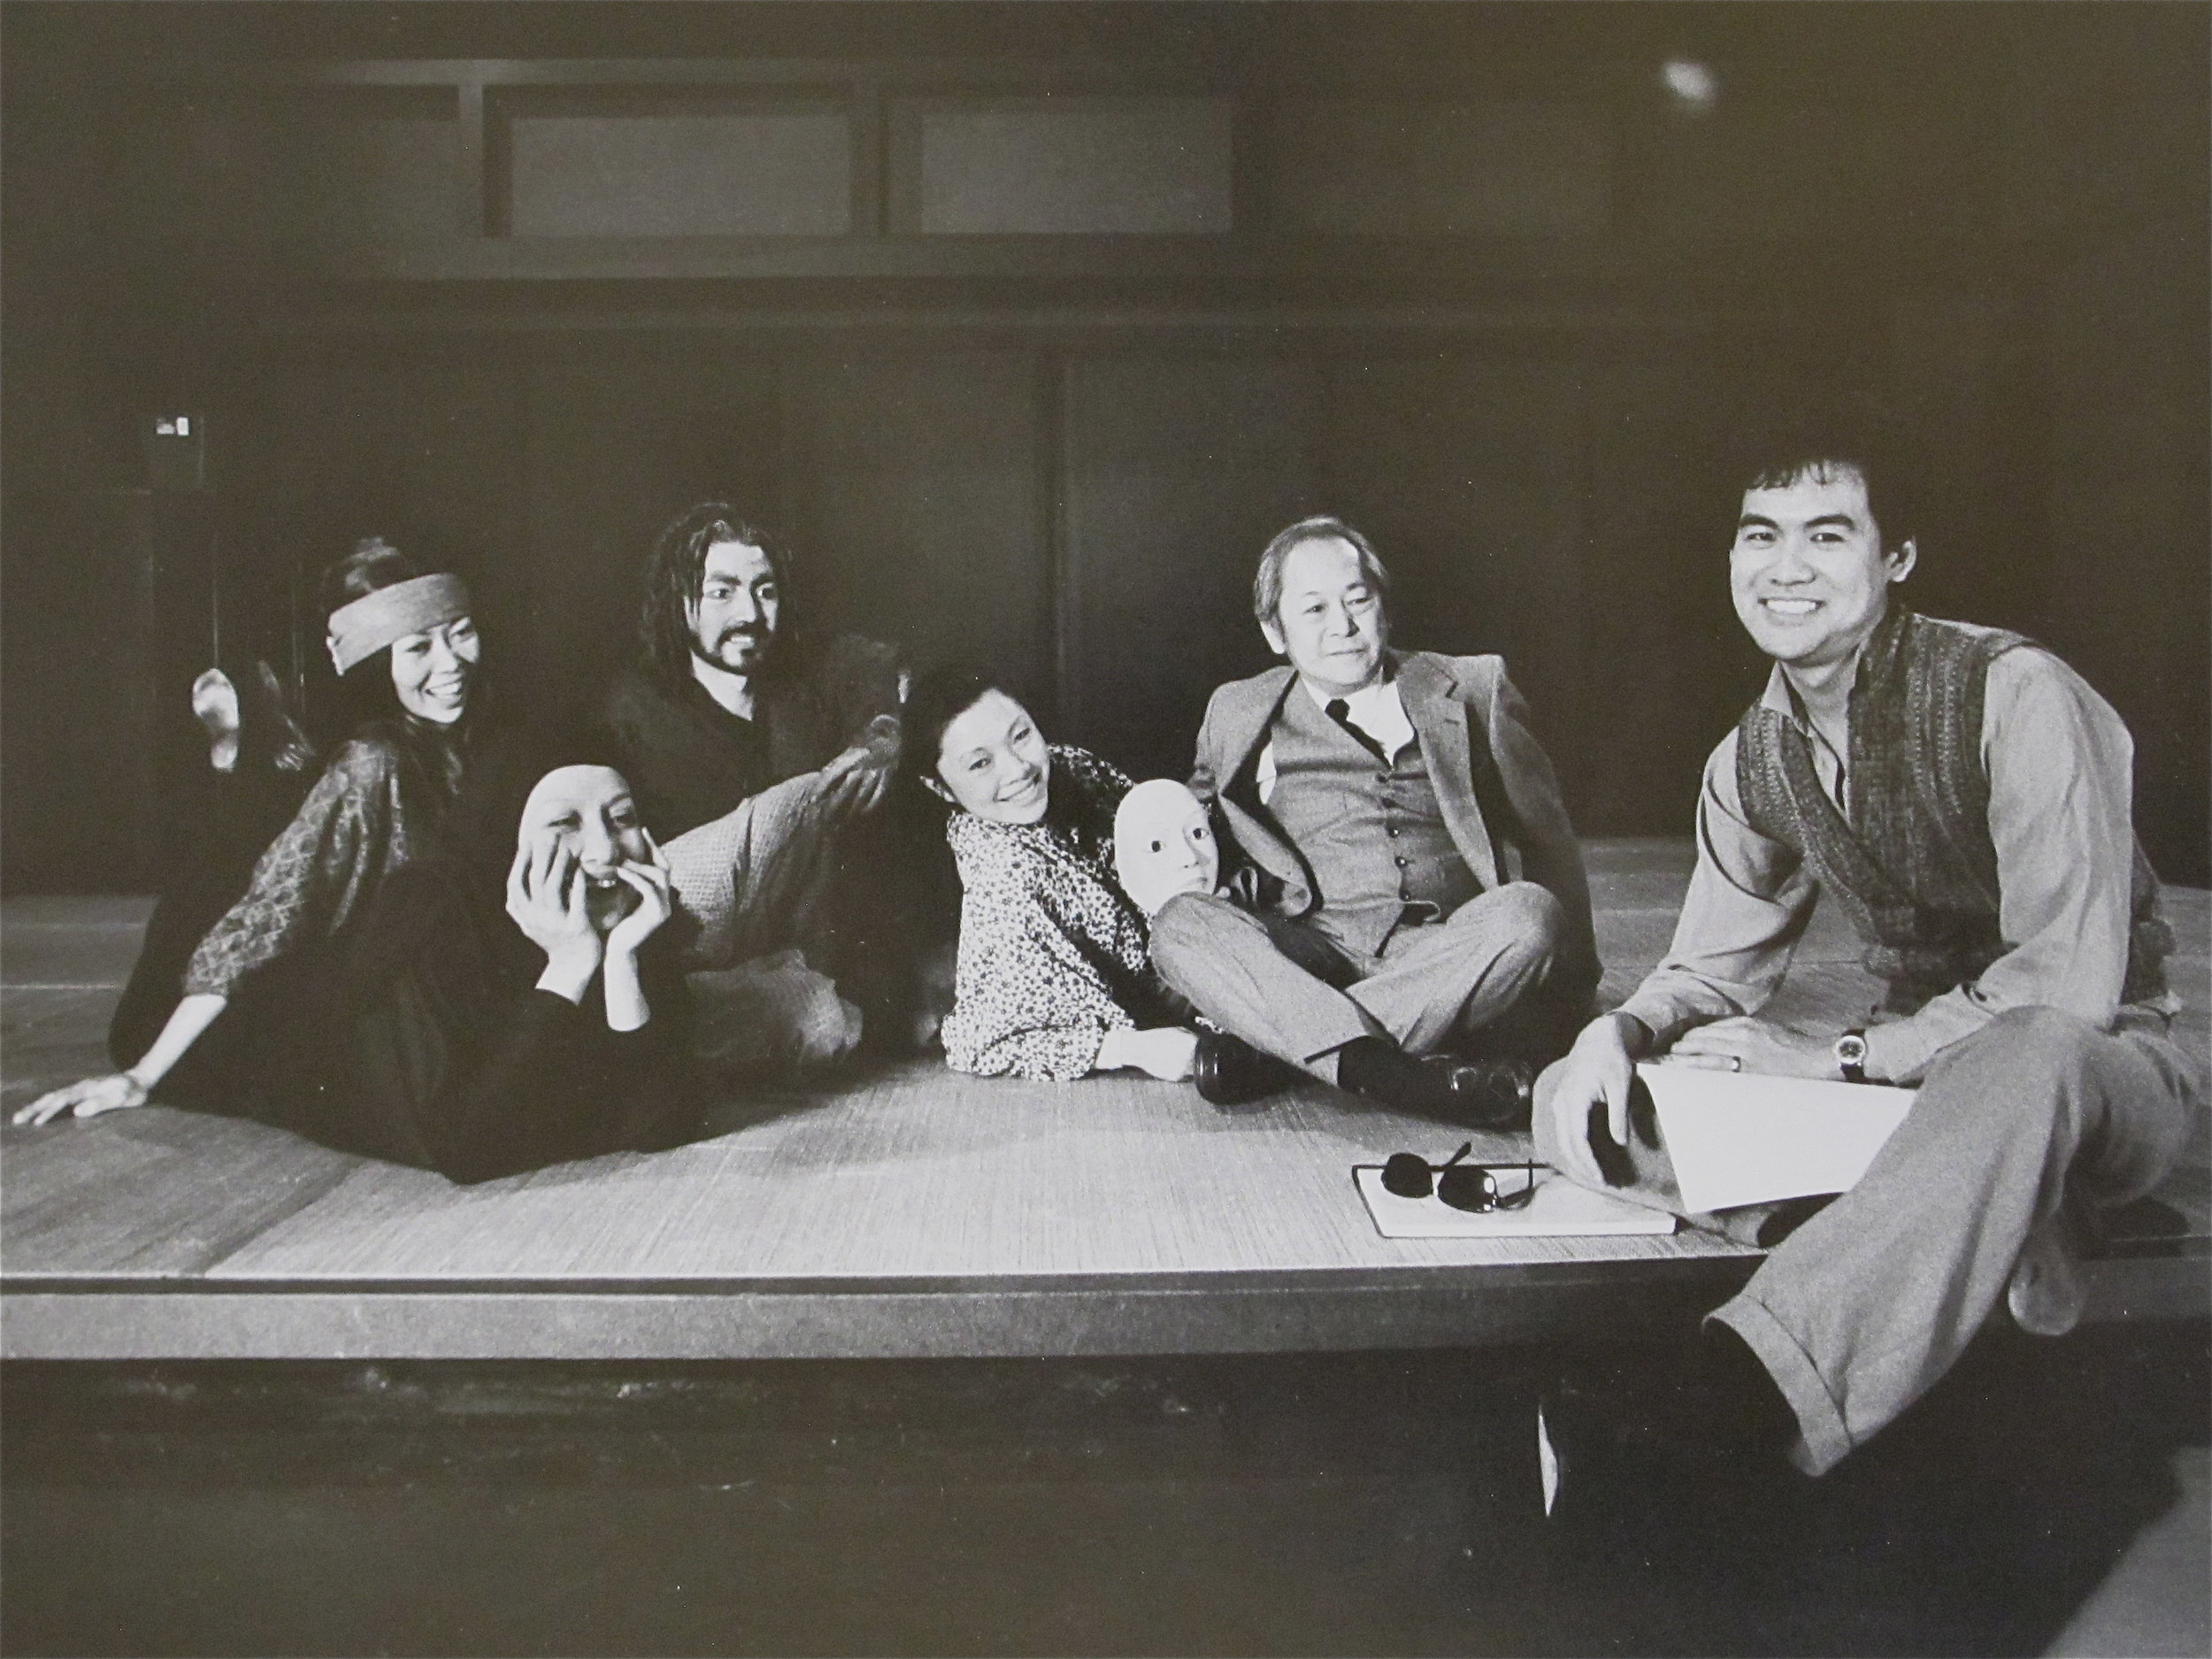 Natsuko Ohama, Ching Valdes-Aran, John Lone, Elizabeth Sung, Victor Wong, and DHH. Photo by Martha Swope.